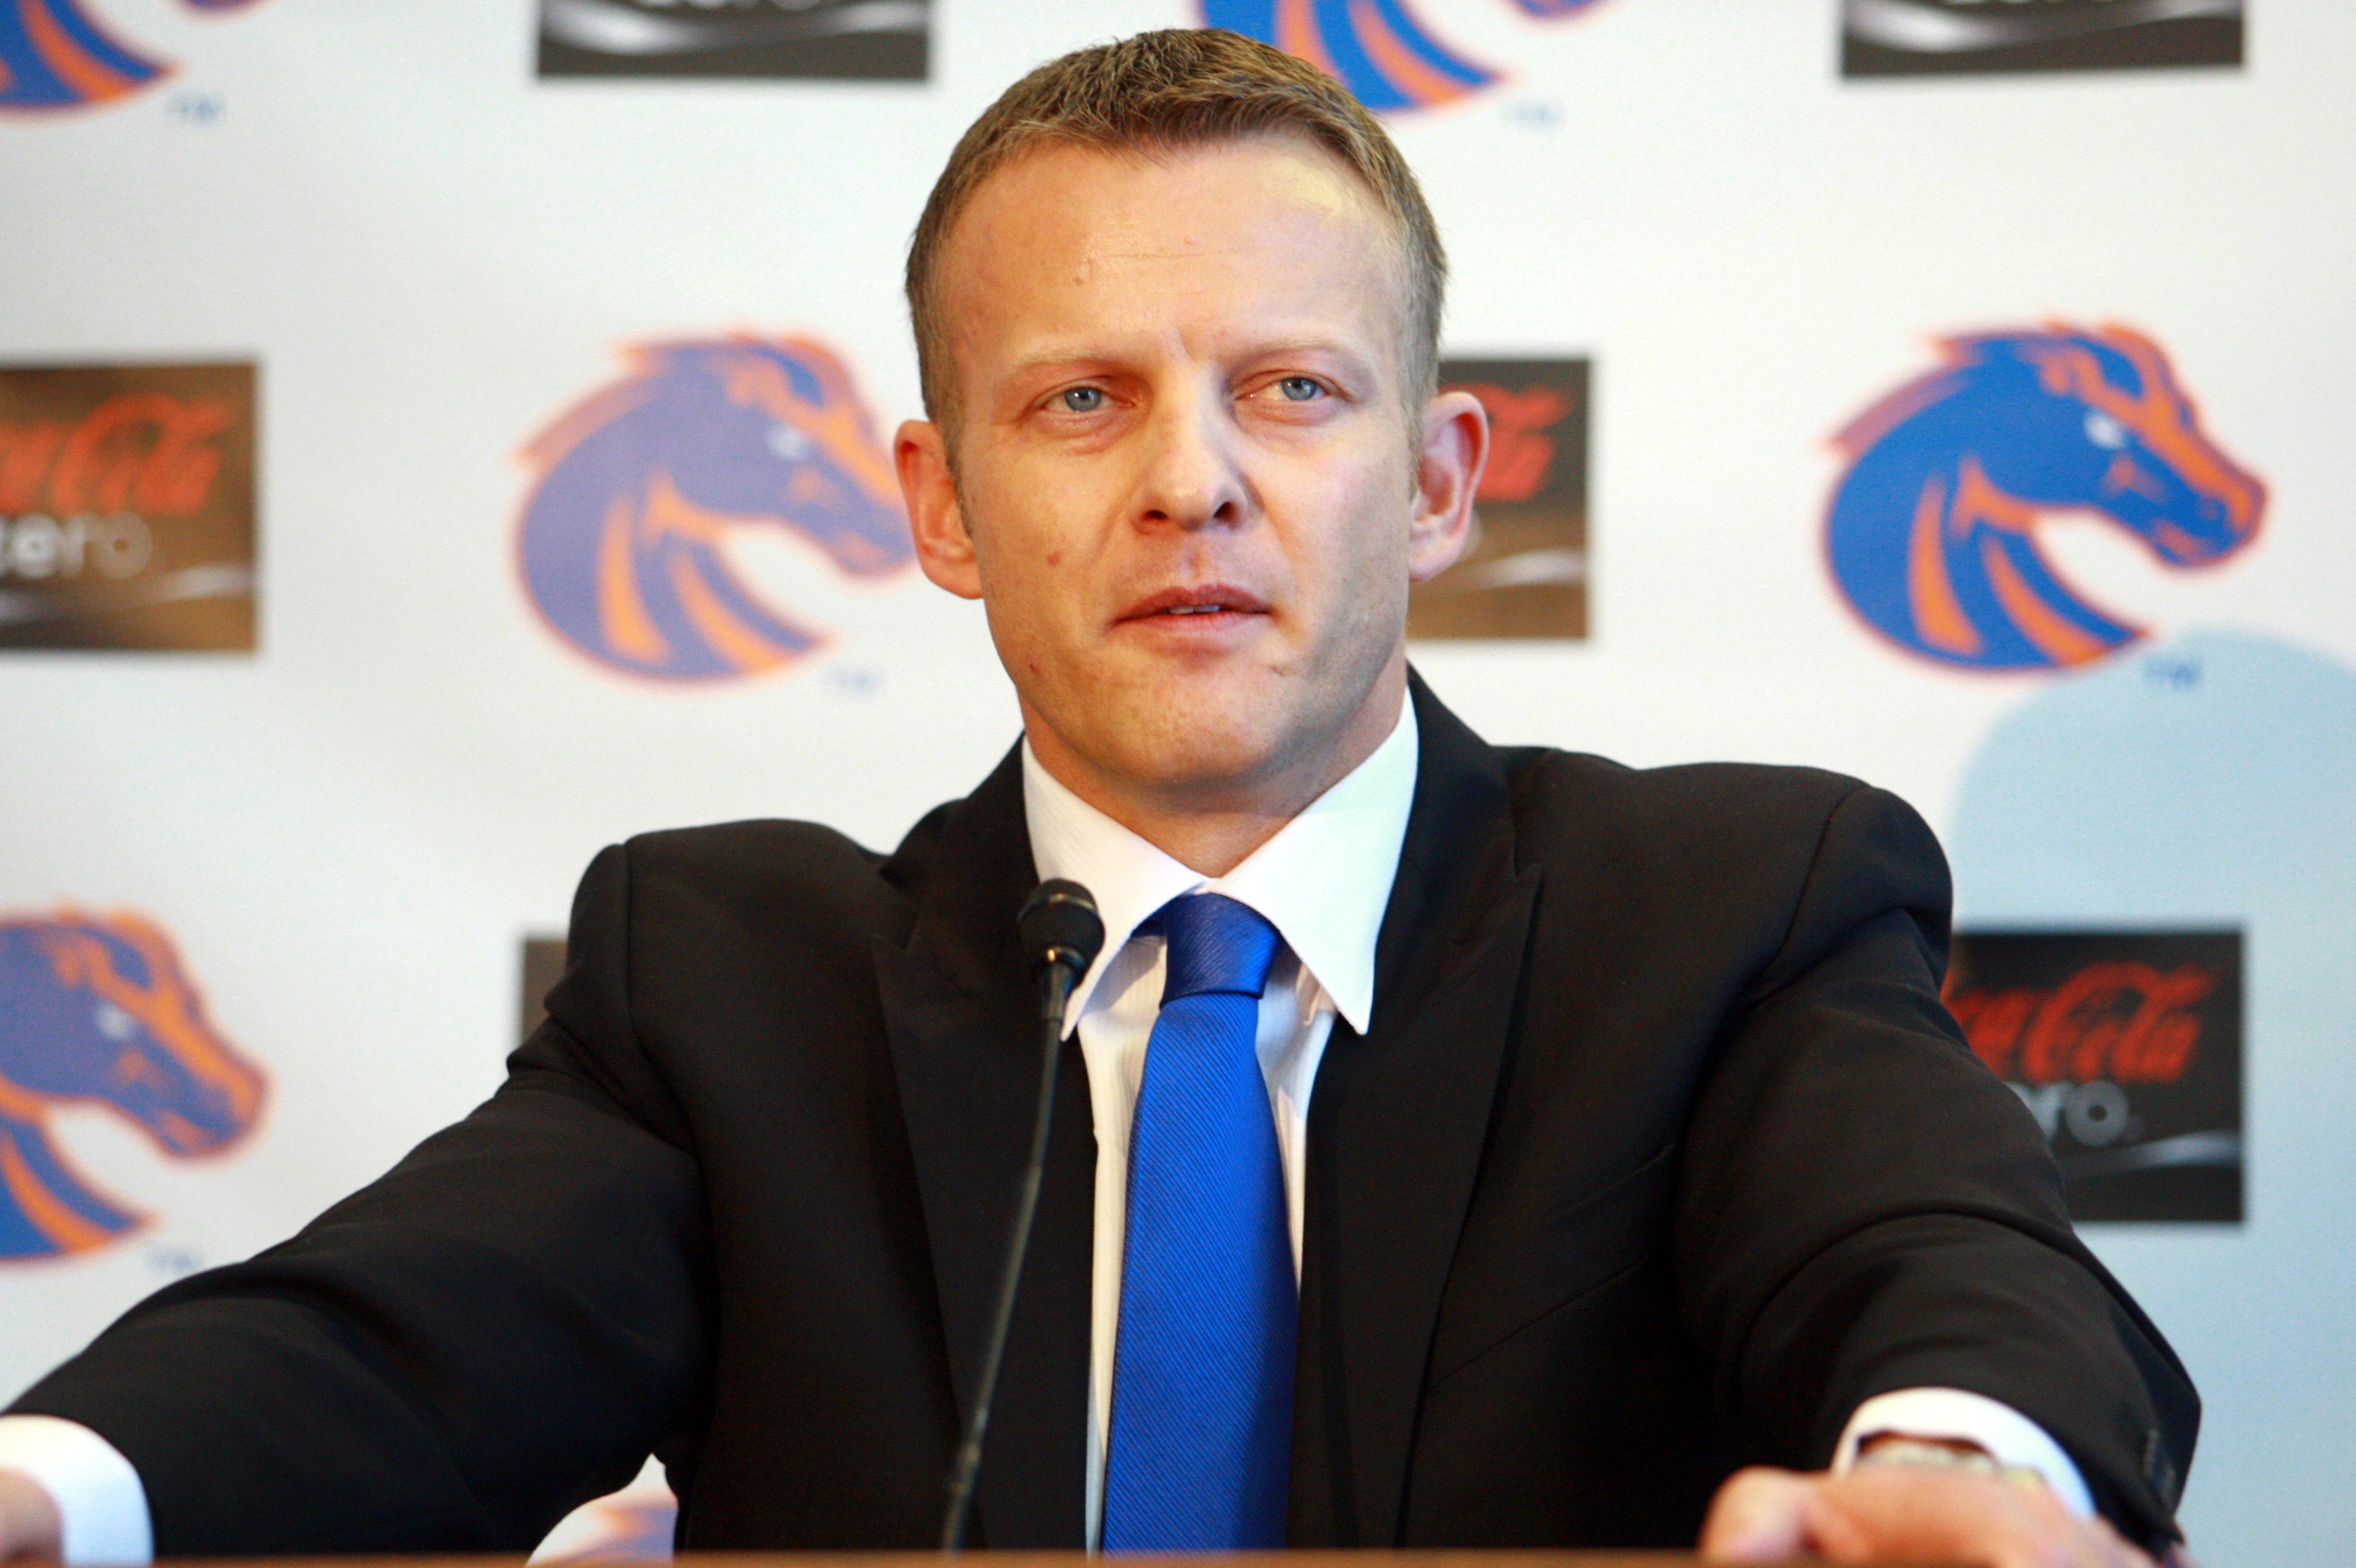 Dec 13, 2013; Boise, ID, USA; Boise State Broncos head new football coach Bryan Harsin addresses the media and boosters at Bronco Hall of Fame.